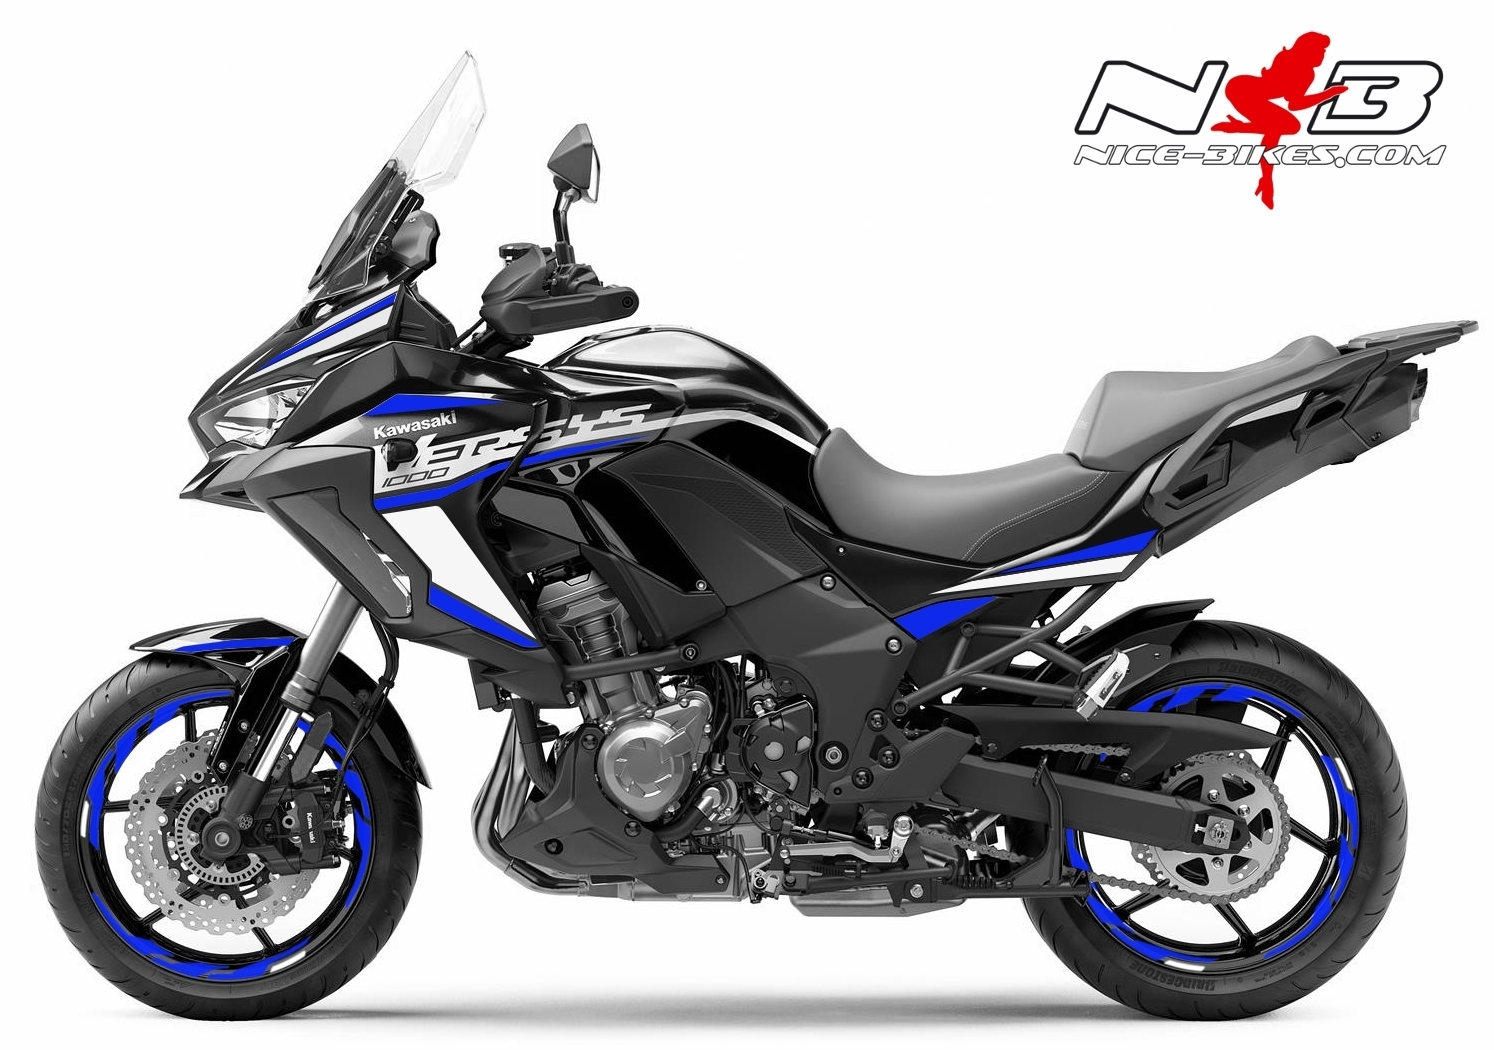 Foliendesign Kawasaki Versys 1000 Bj. 2020 Racing Blue